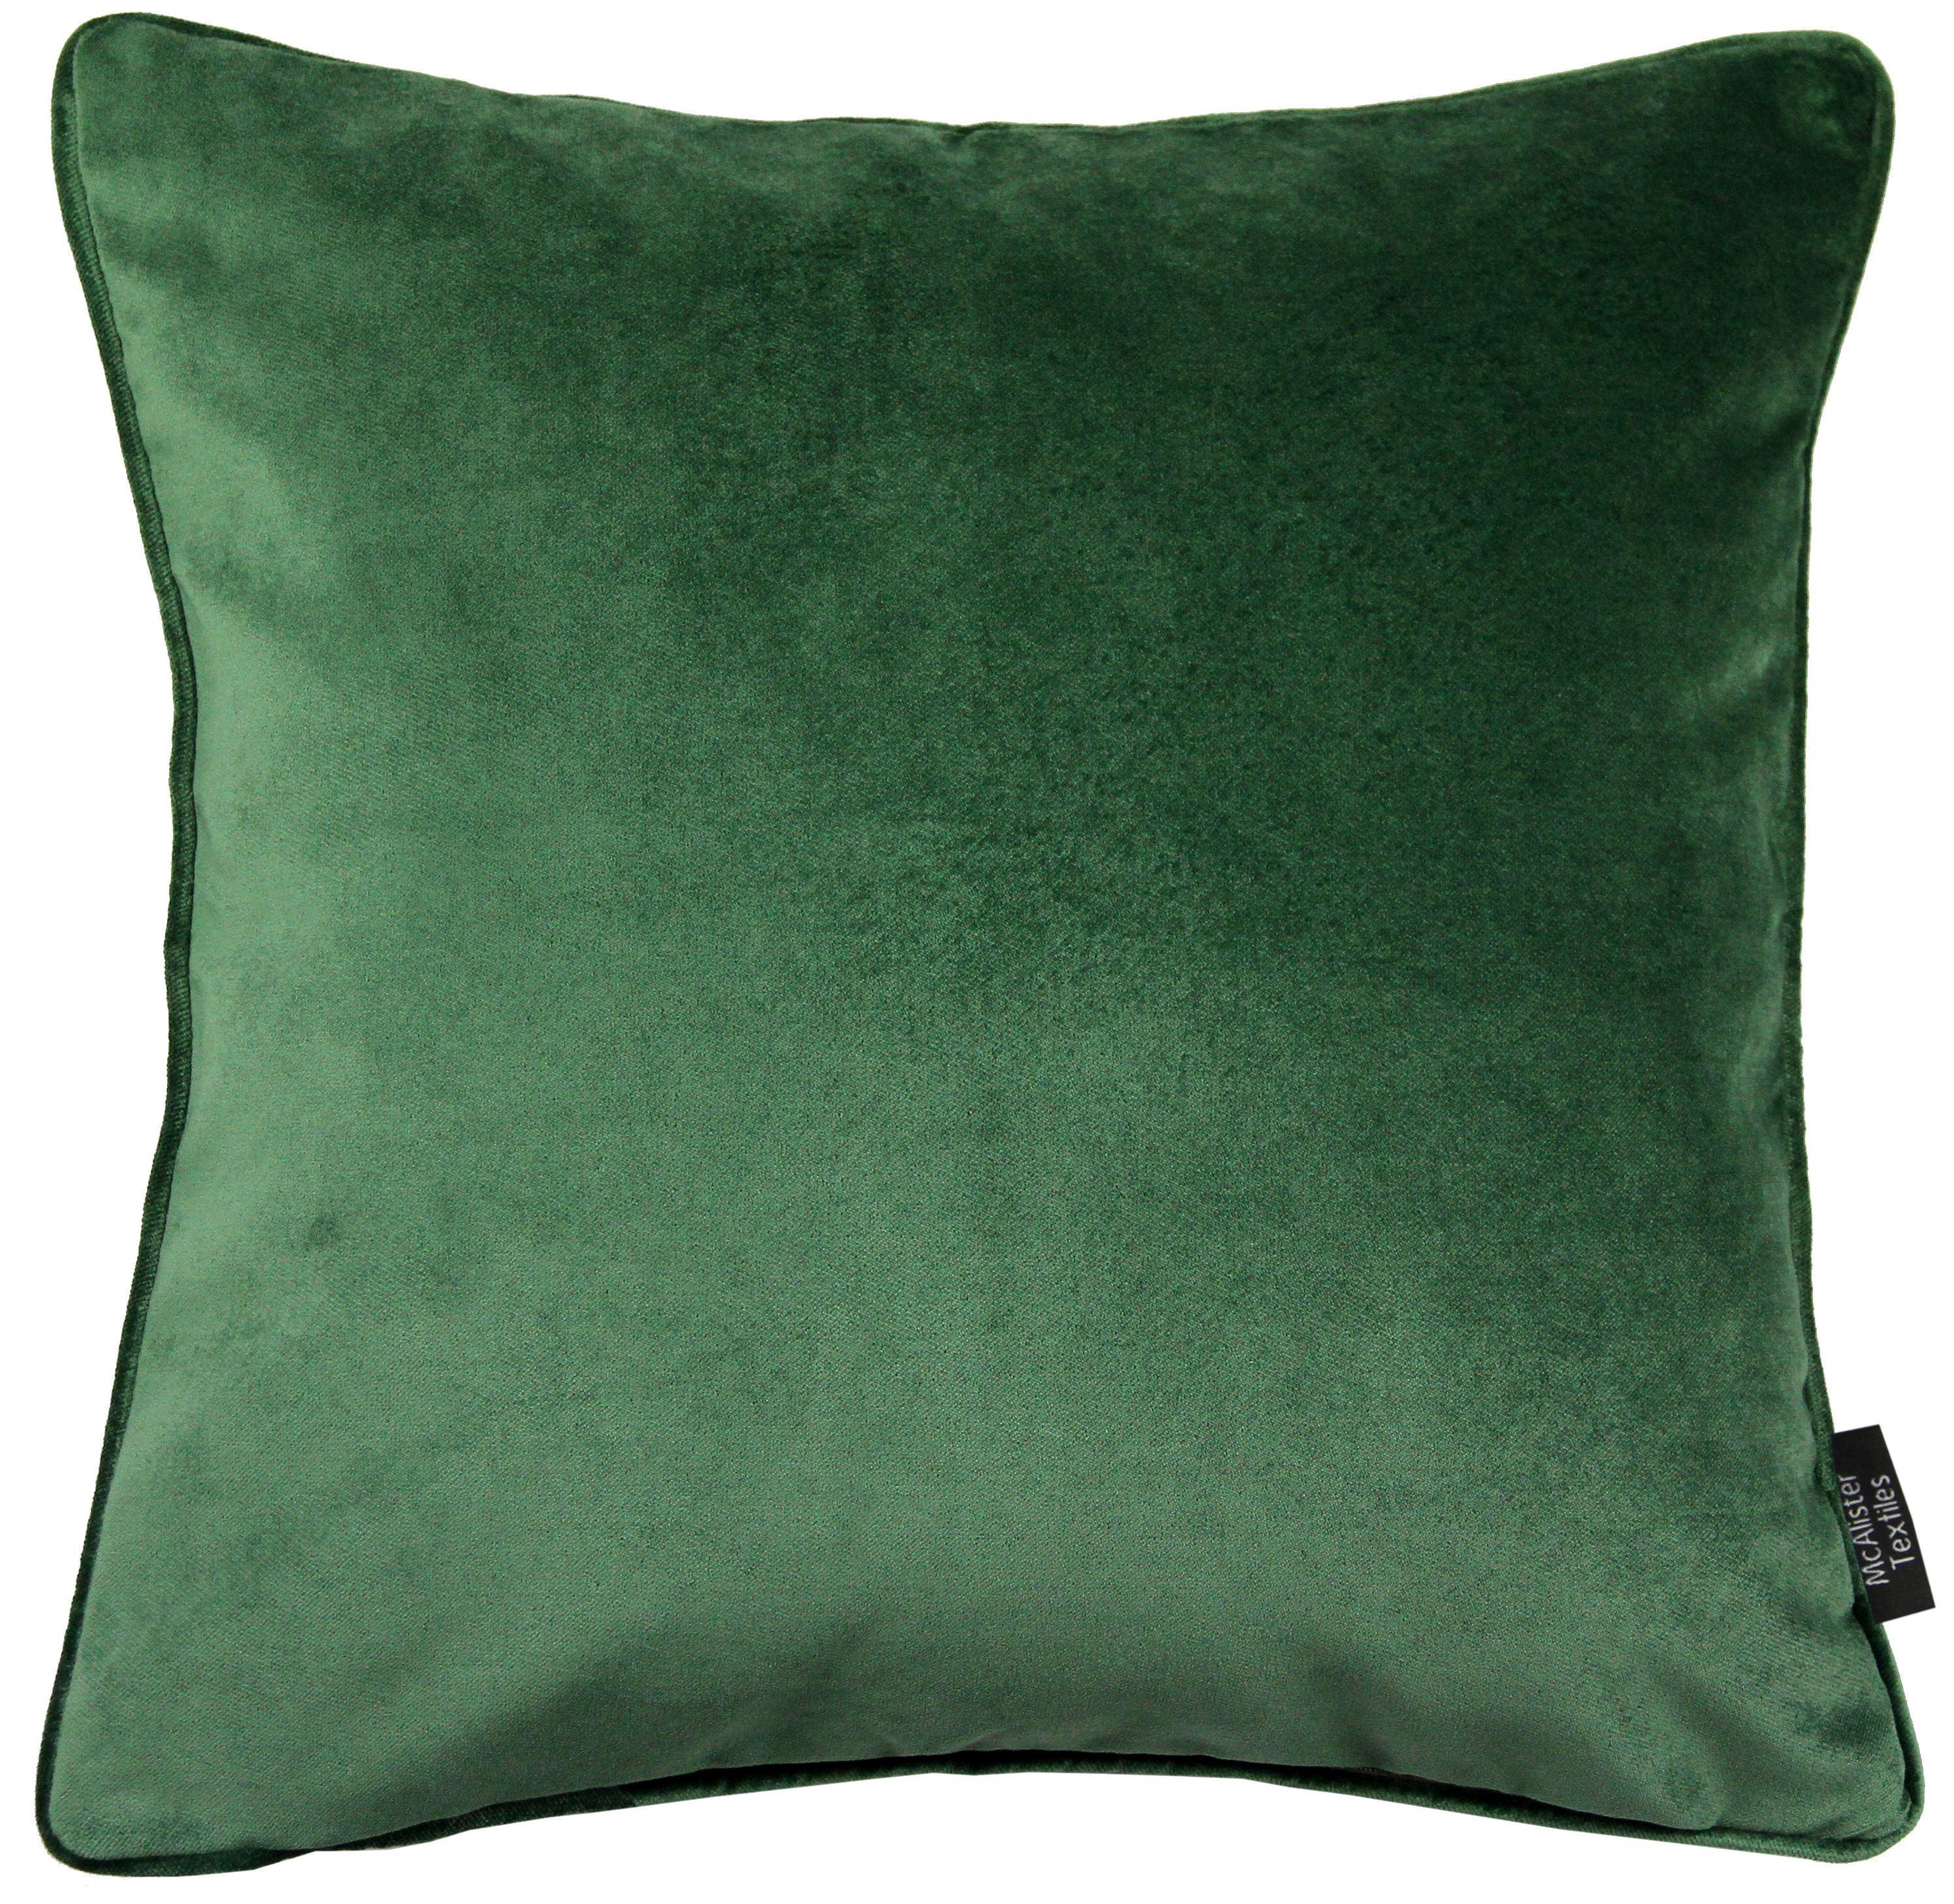 11 colors Pillow Covers, green